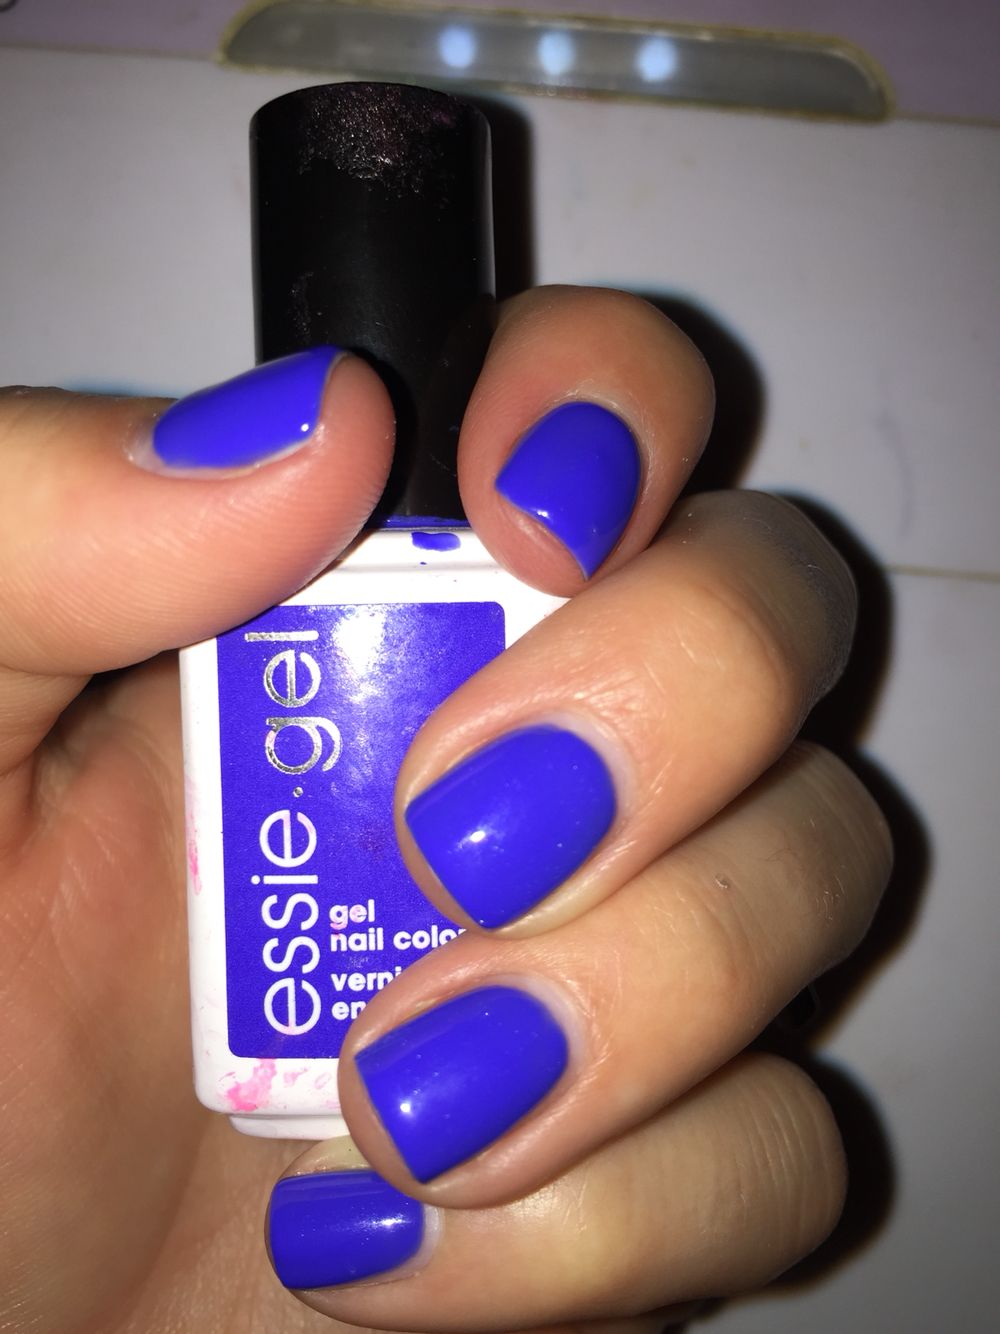 Essie Gel Nail Color In Valet To My Chalet Dupe For Essie Butler Please Gel Nail Polish